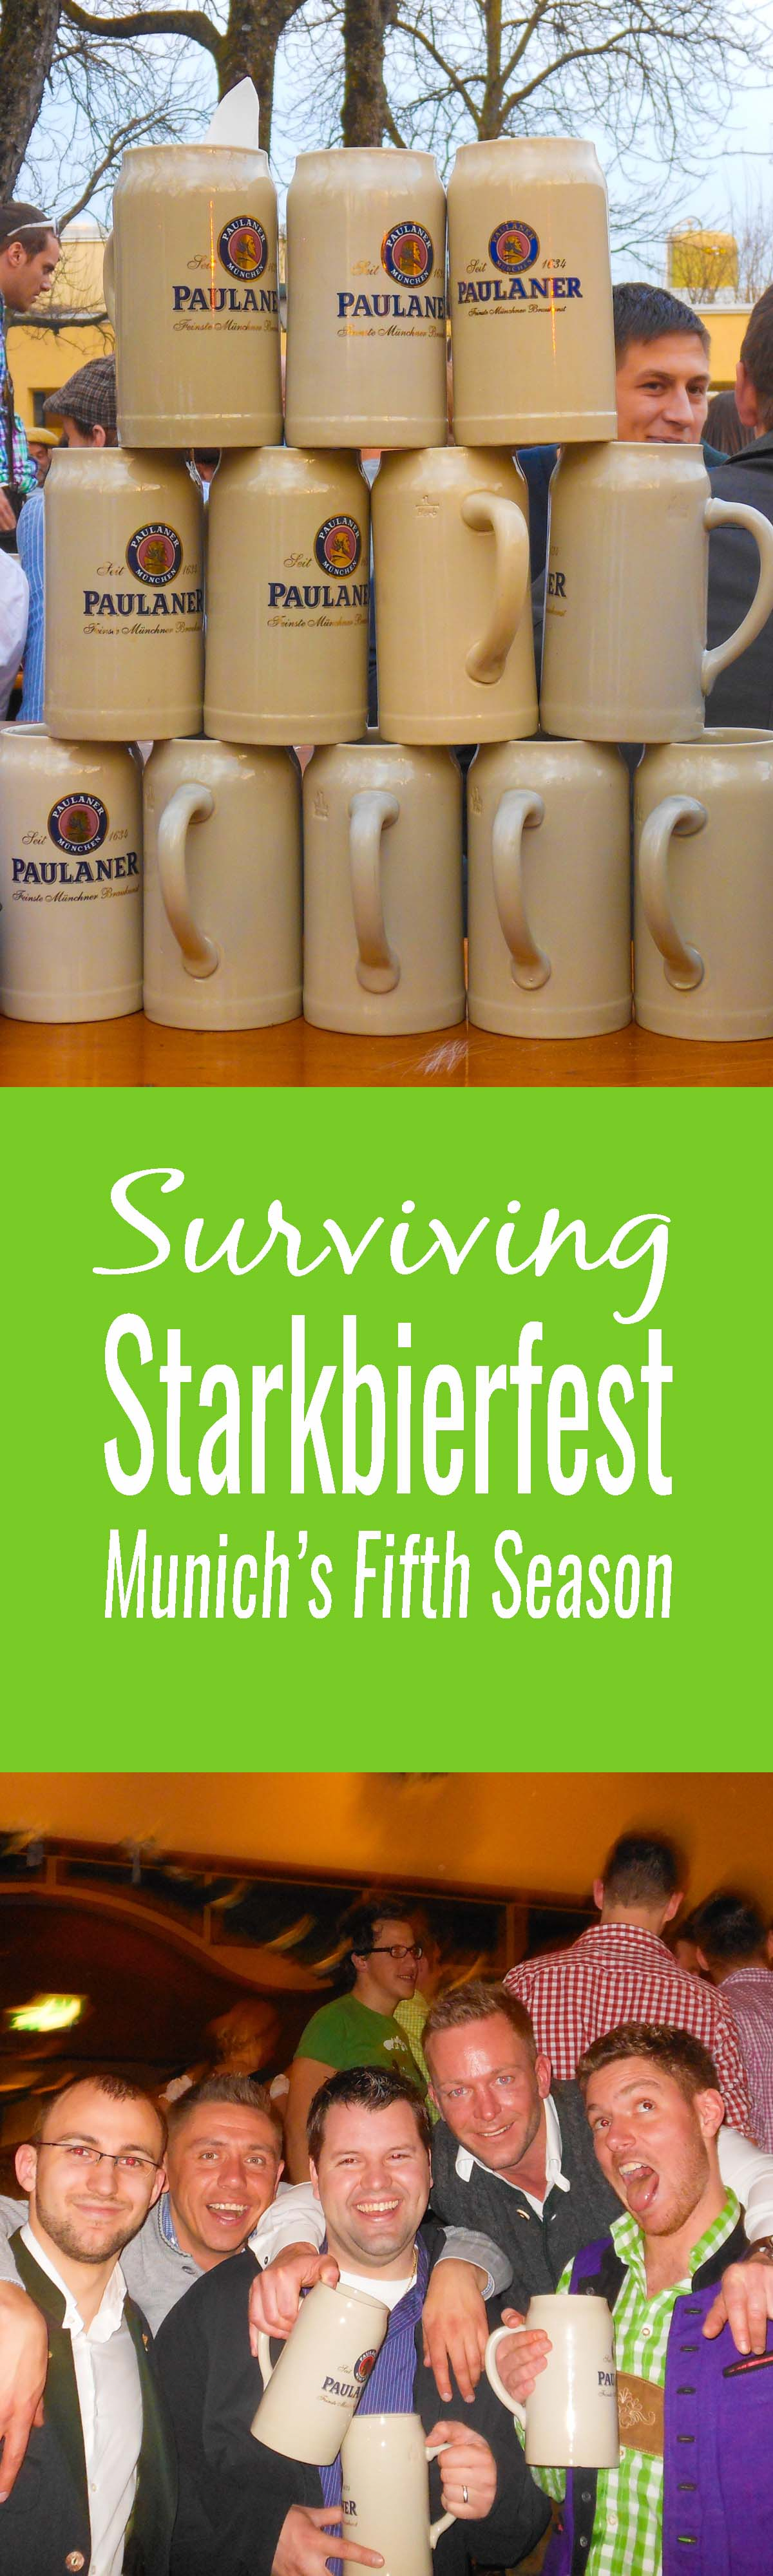 Starkbierfest in Munich. Why fight the crowds of Octoberfest when Munich has a lesser known, more authentic festival in the Spring - Starkbierfest. Here's how to attend.